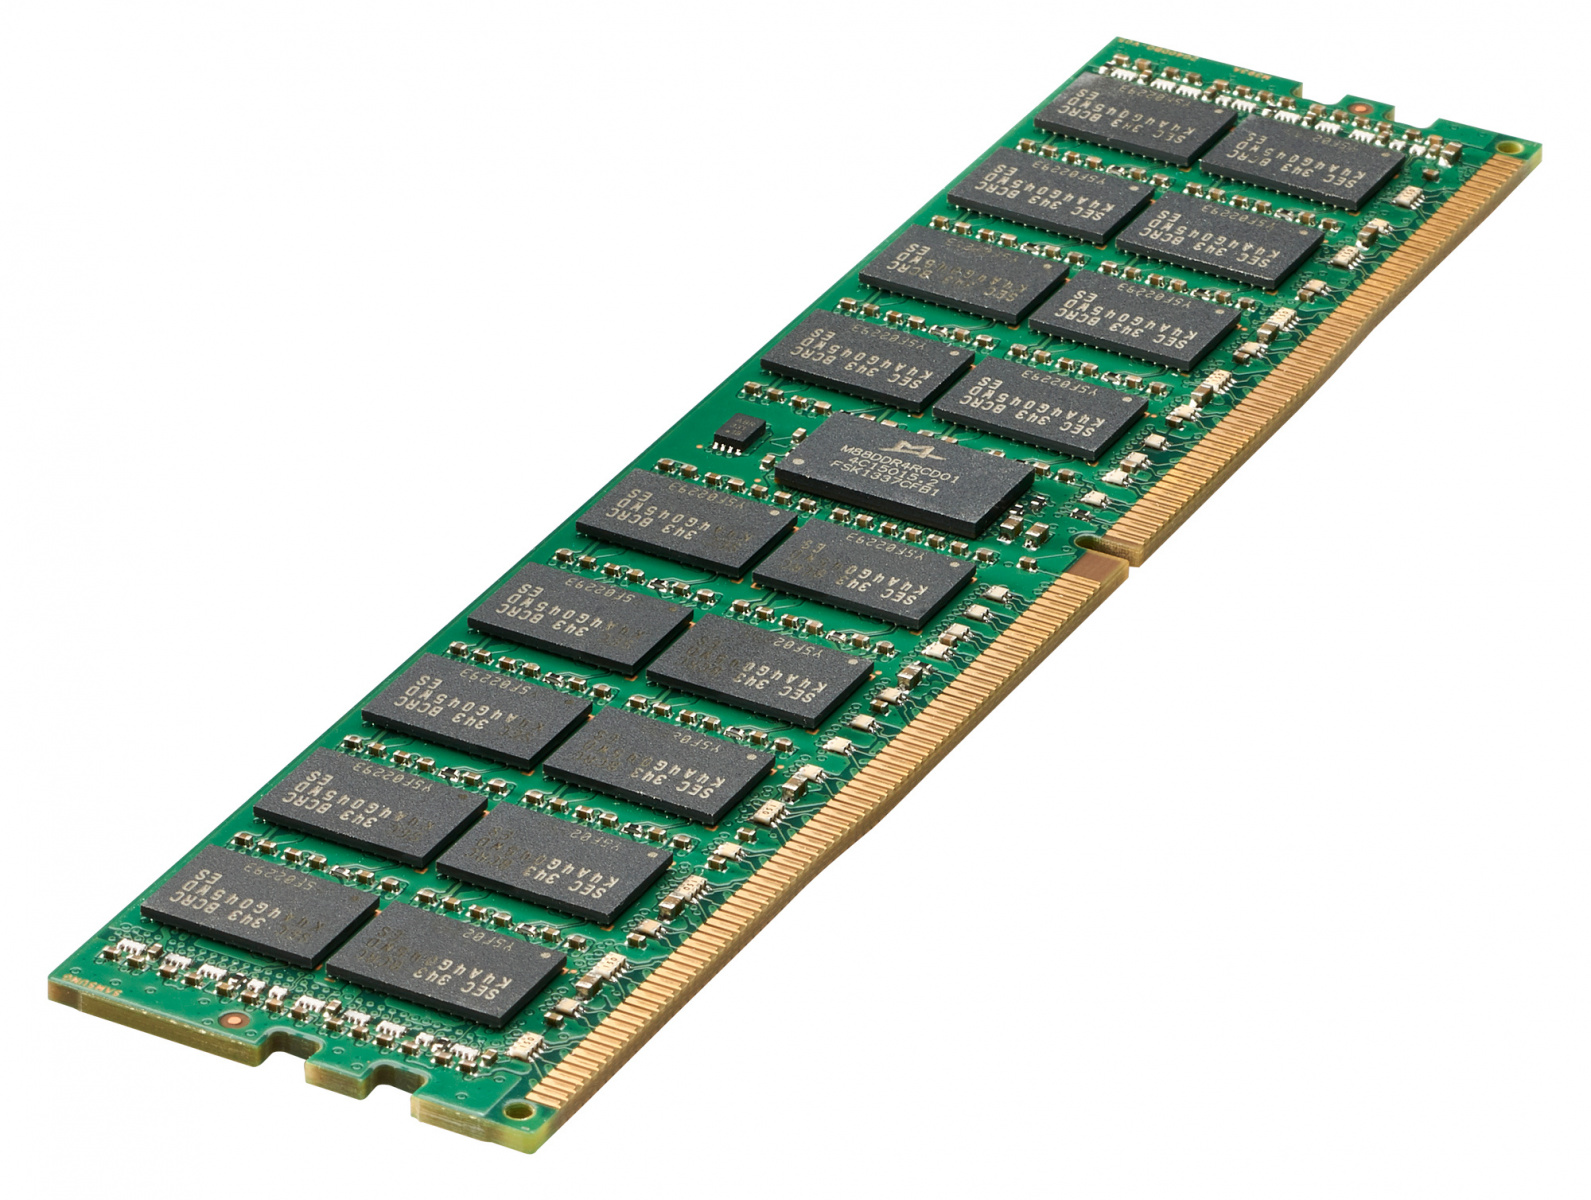 Память DDR4 HPE 838079-B21 8Gb RDIMM ECC Reg PC4-2666V-R CL19 2666MHz - интернет-магазин Skyey.ru